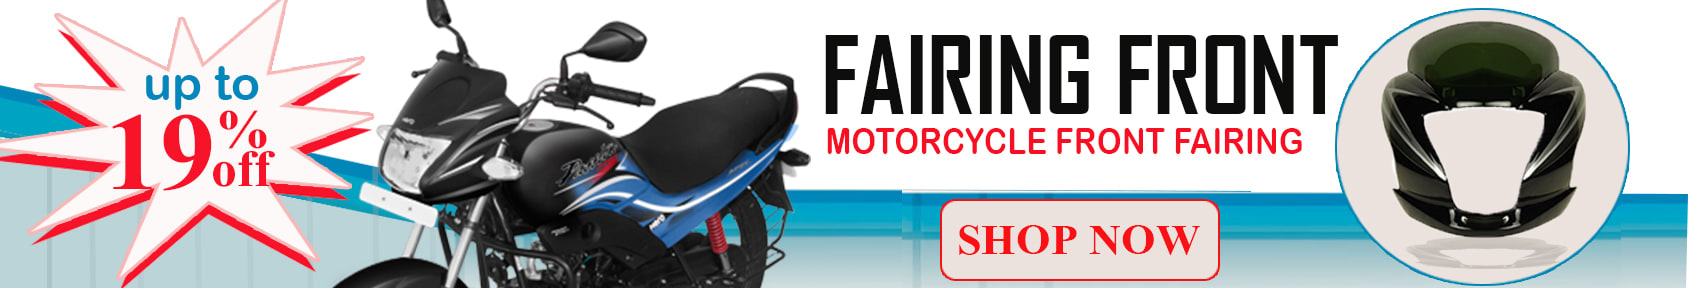 Special offers on Genuine Motorcycle Spare Parts And Accessories - Upto 19% Off On Fairing Front (Visor)